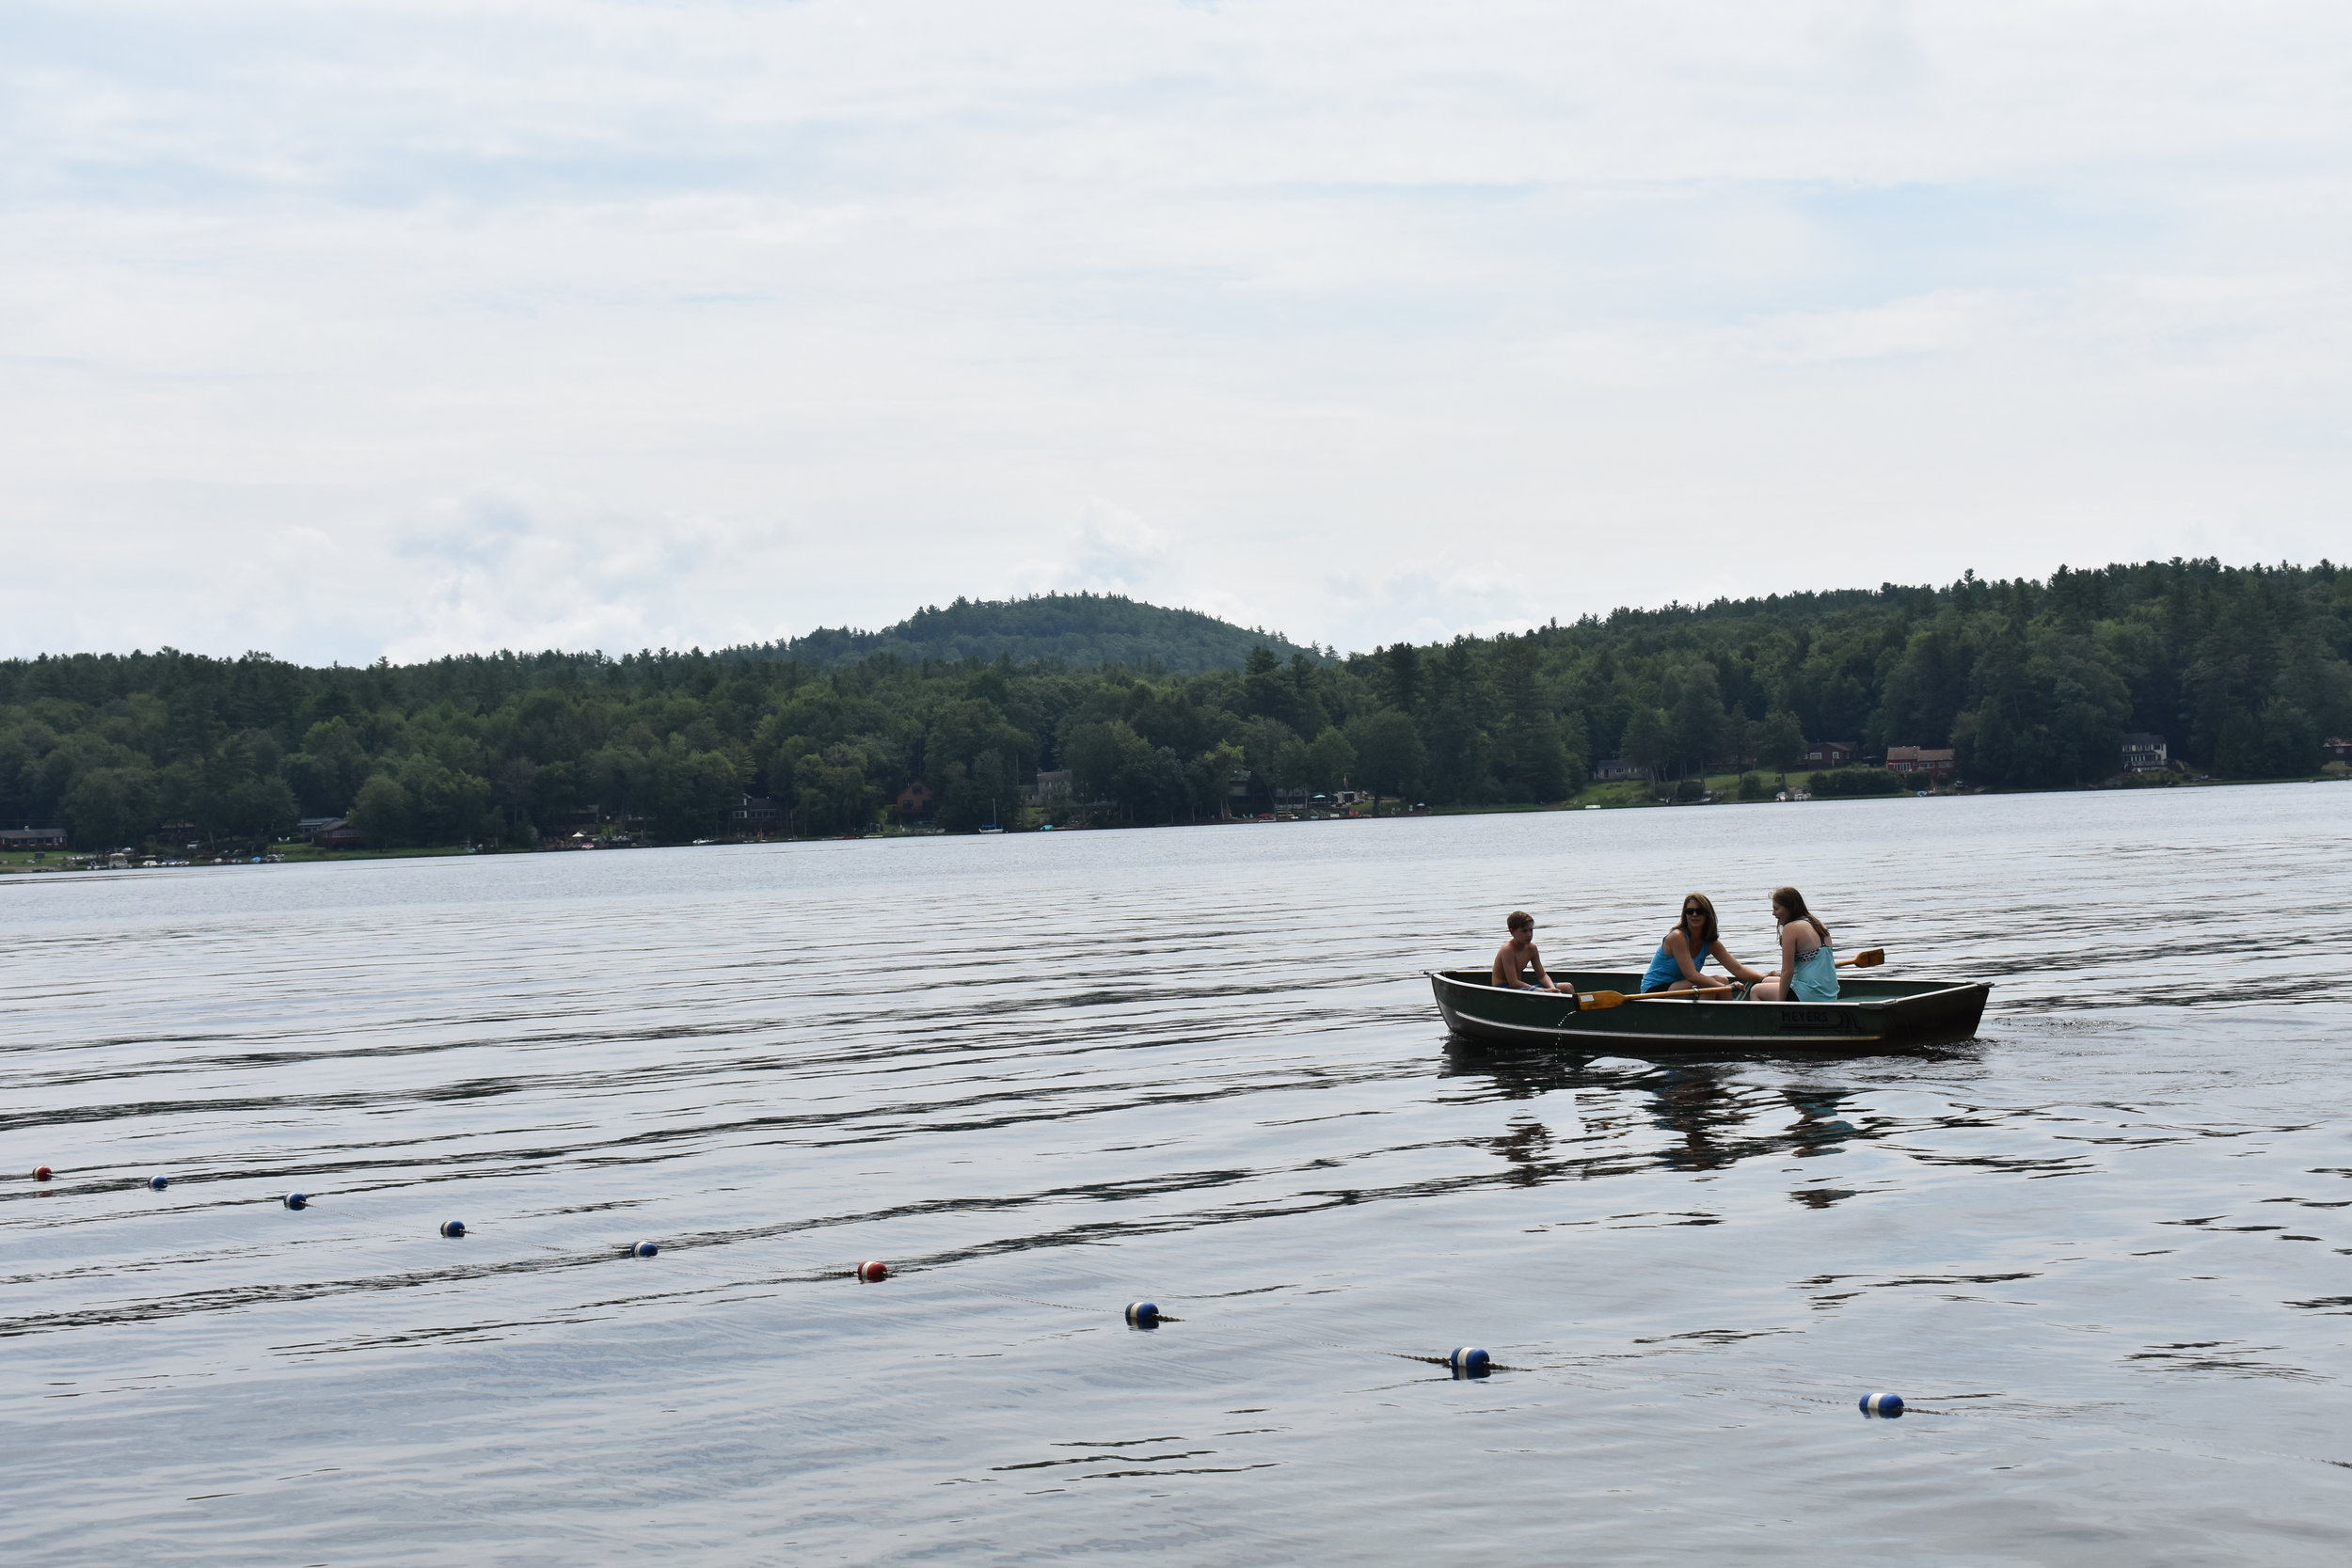 We like to describe your experience at Trout Lake Club as a step above camping. Vacationing at Trout Lake Club gives you the opportunity to get the rustic experience of camping in the Adirondacks without the tent and sleeping on the ground. Our recommended packing list is as follows: -